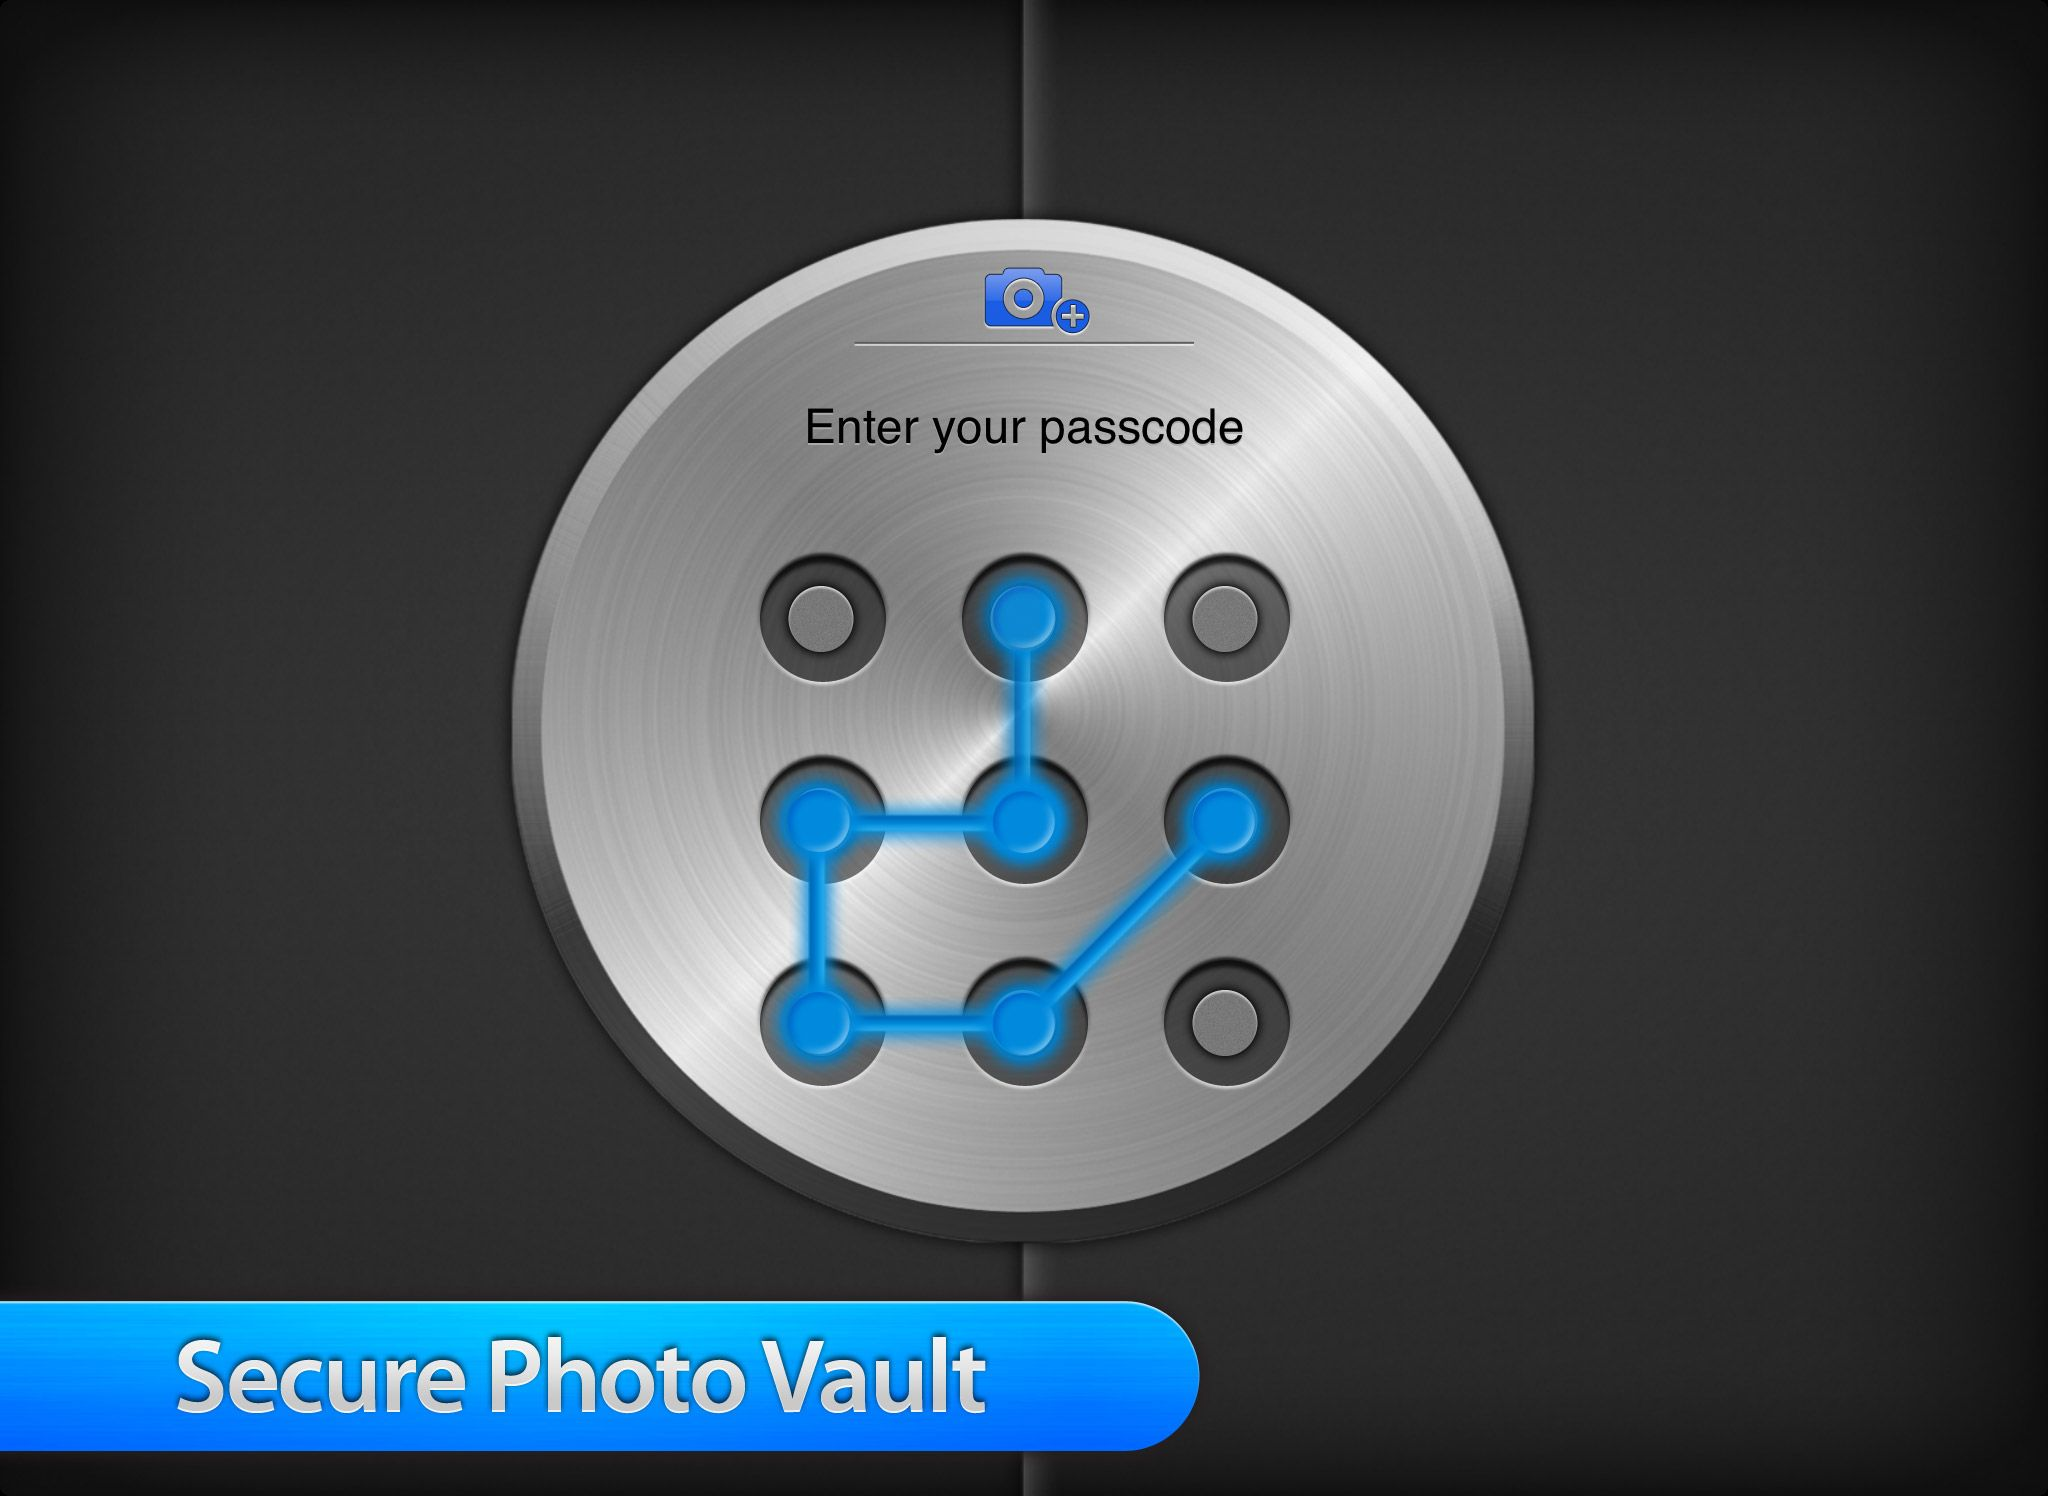 oneSafe Pix is your secure photo vault that helps you save your private photos and videos with the highest level of encrypted protection